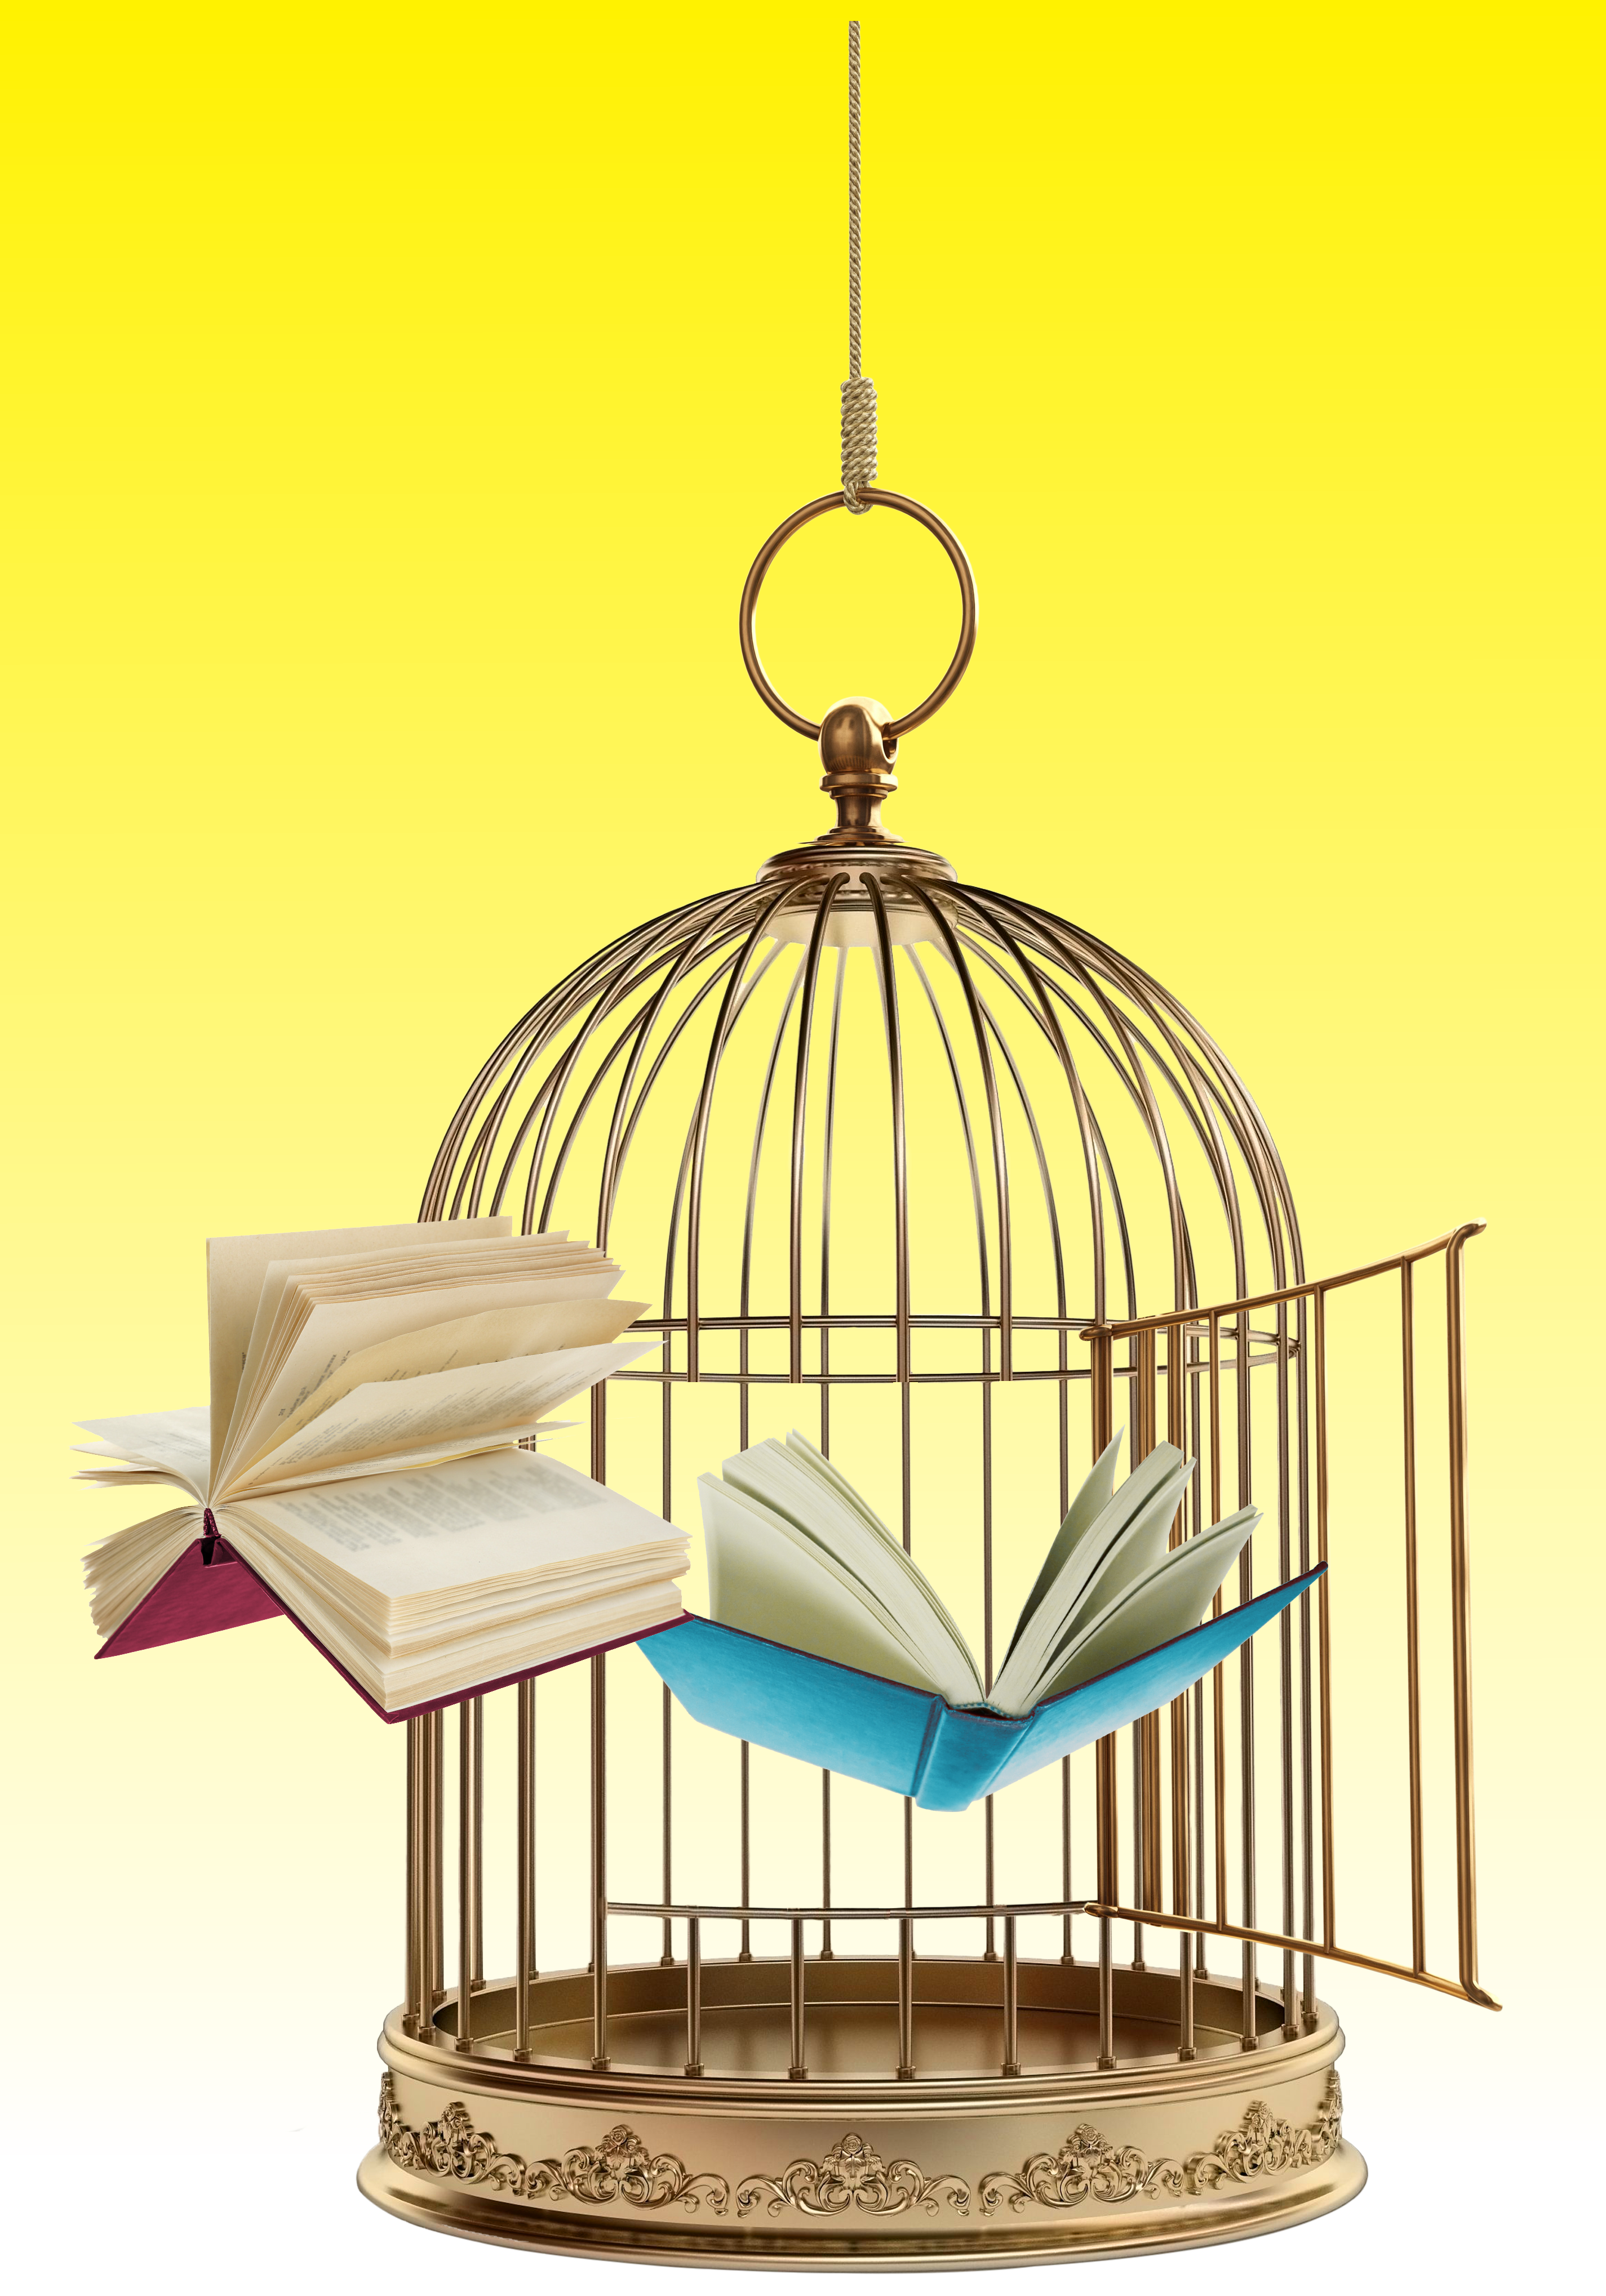 An open birdcage with books flying out of it in front of a soft yellow background.